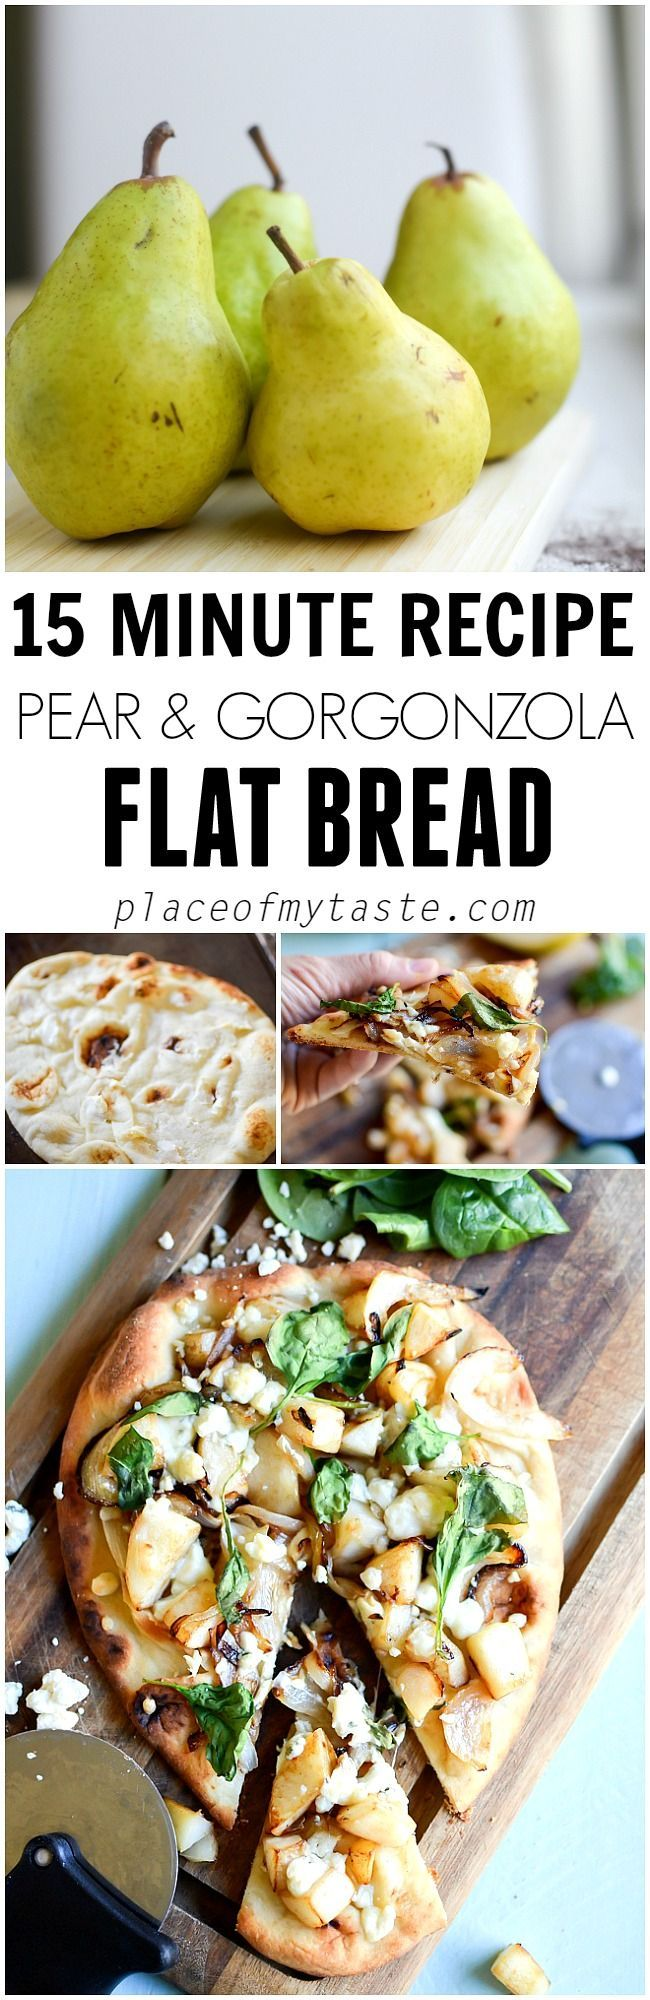 This flat bread recipe has the most amazing flavors and it's done in 15 minutes!!